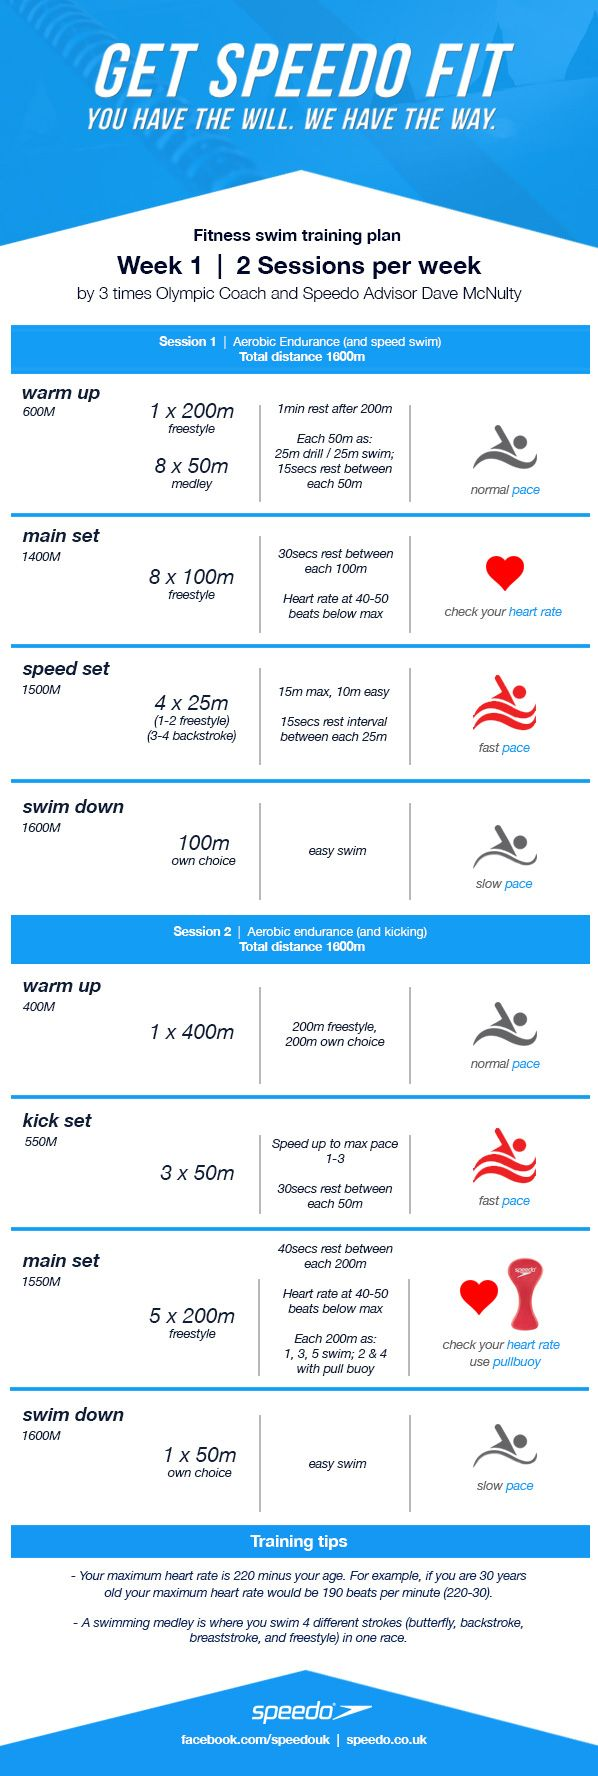 Dave McNulty Swim Fitness Training Plan - Week 1 | Speedo